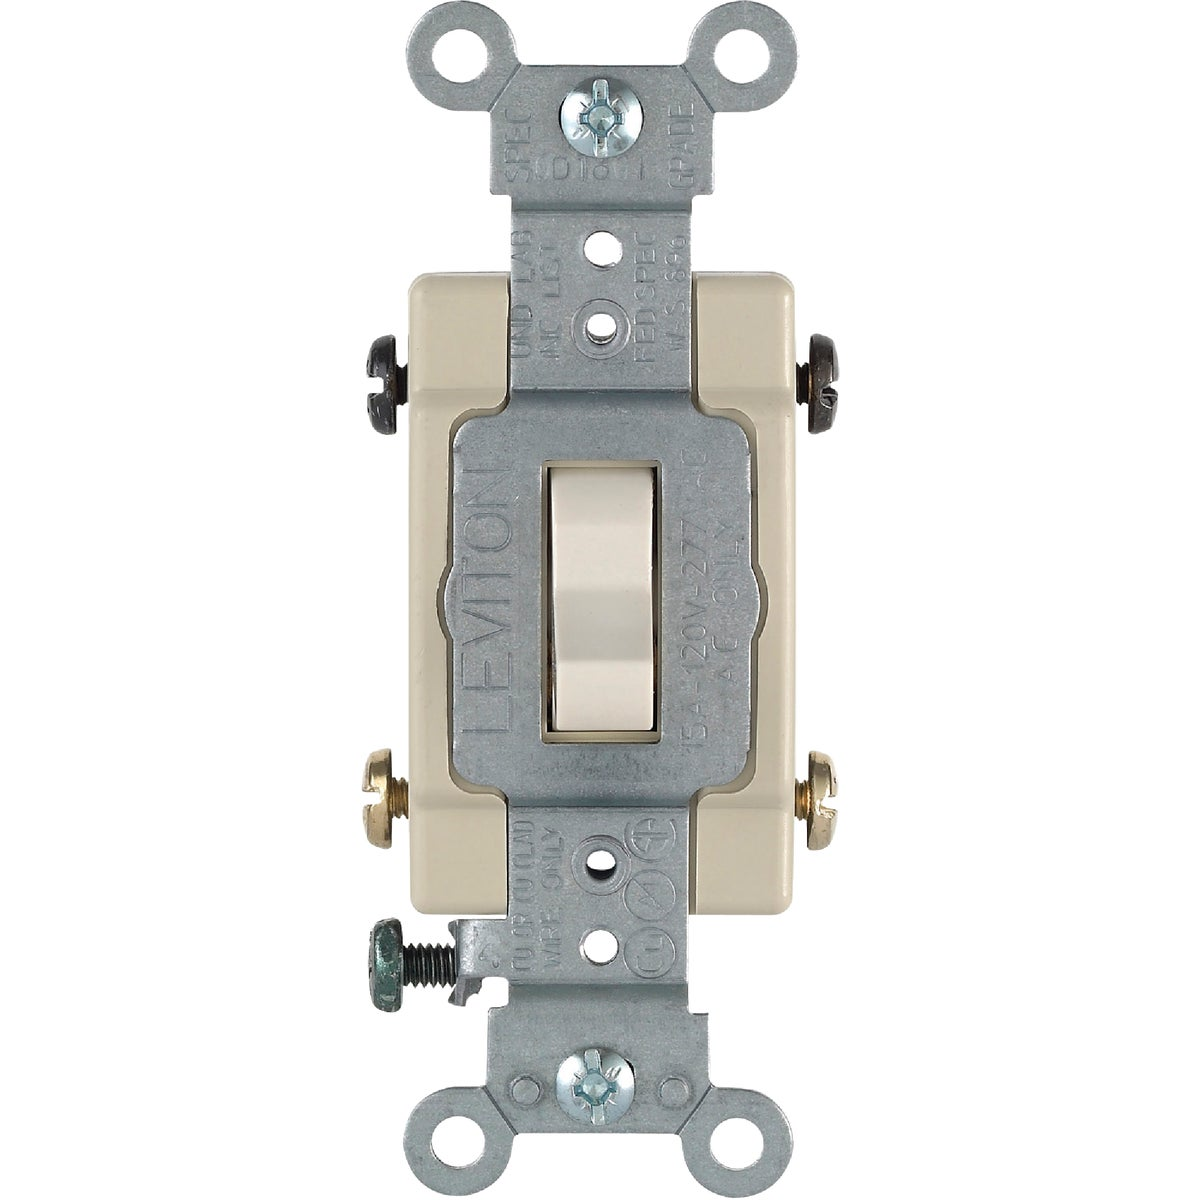 LT ALM 4-WAY SWITCH - SO6-CS415-2TS by Leviton Mfg Co